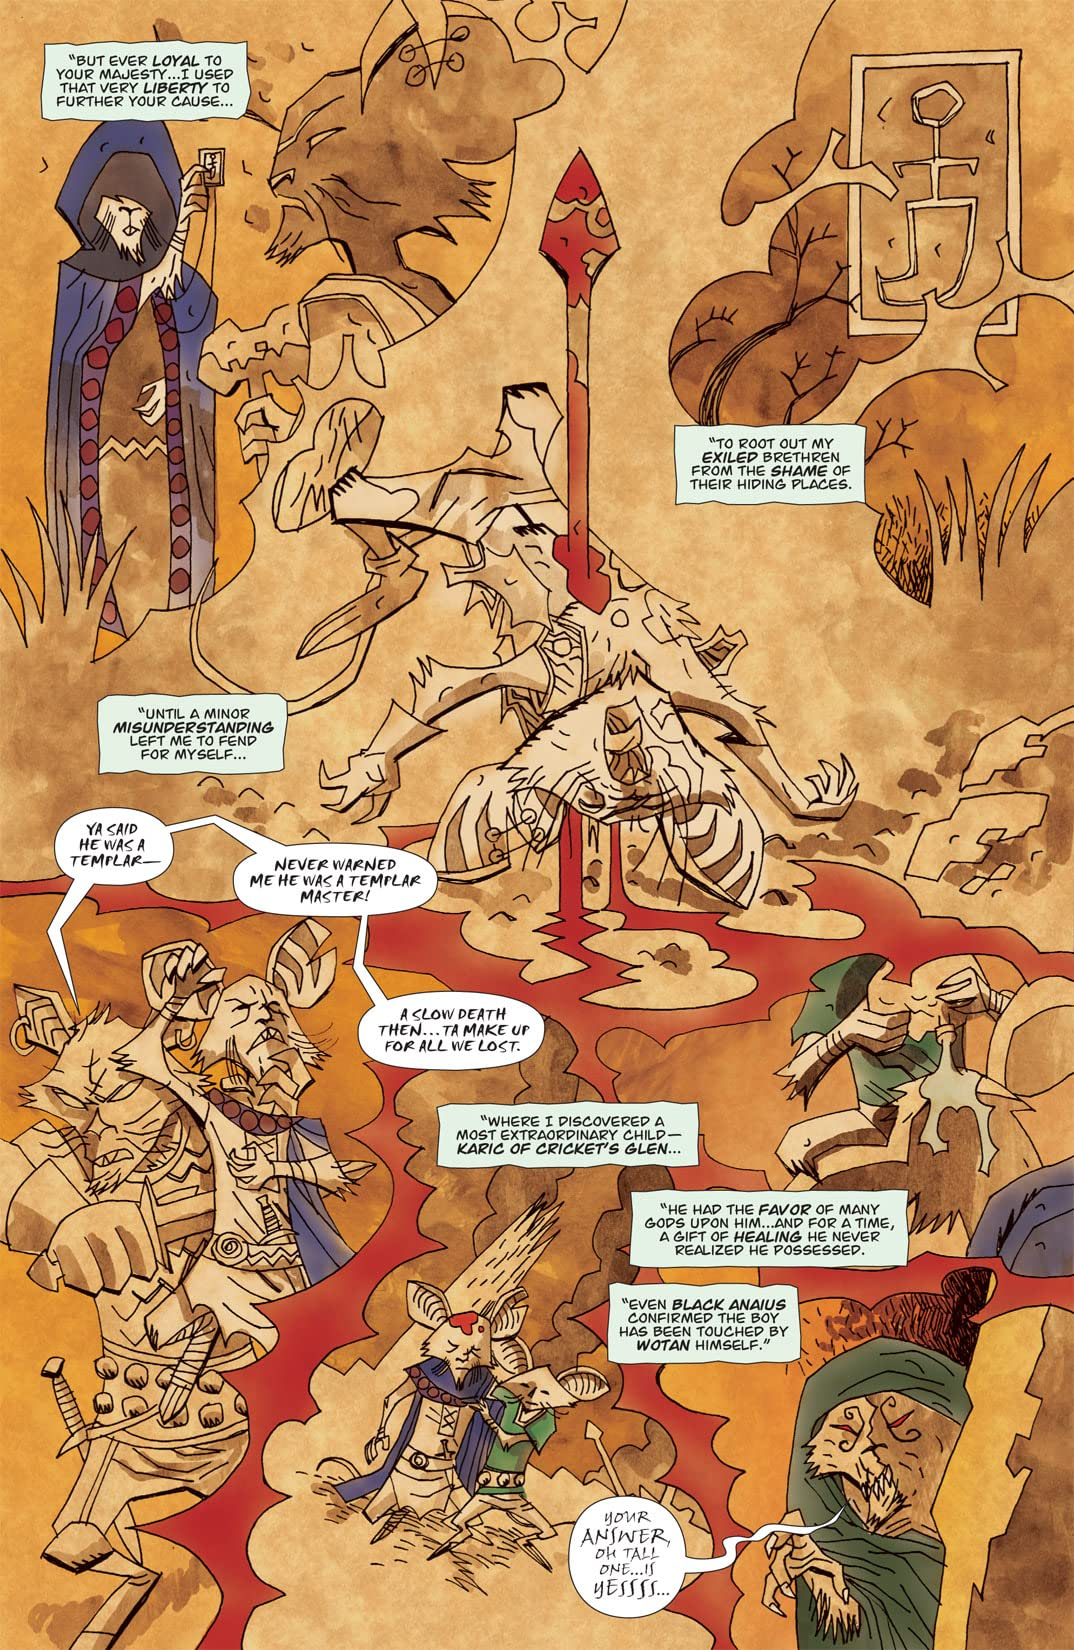 The Mice Templar: Destiny #8